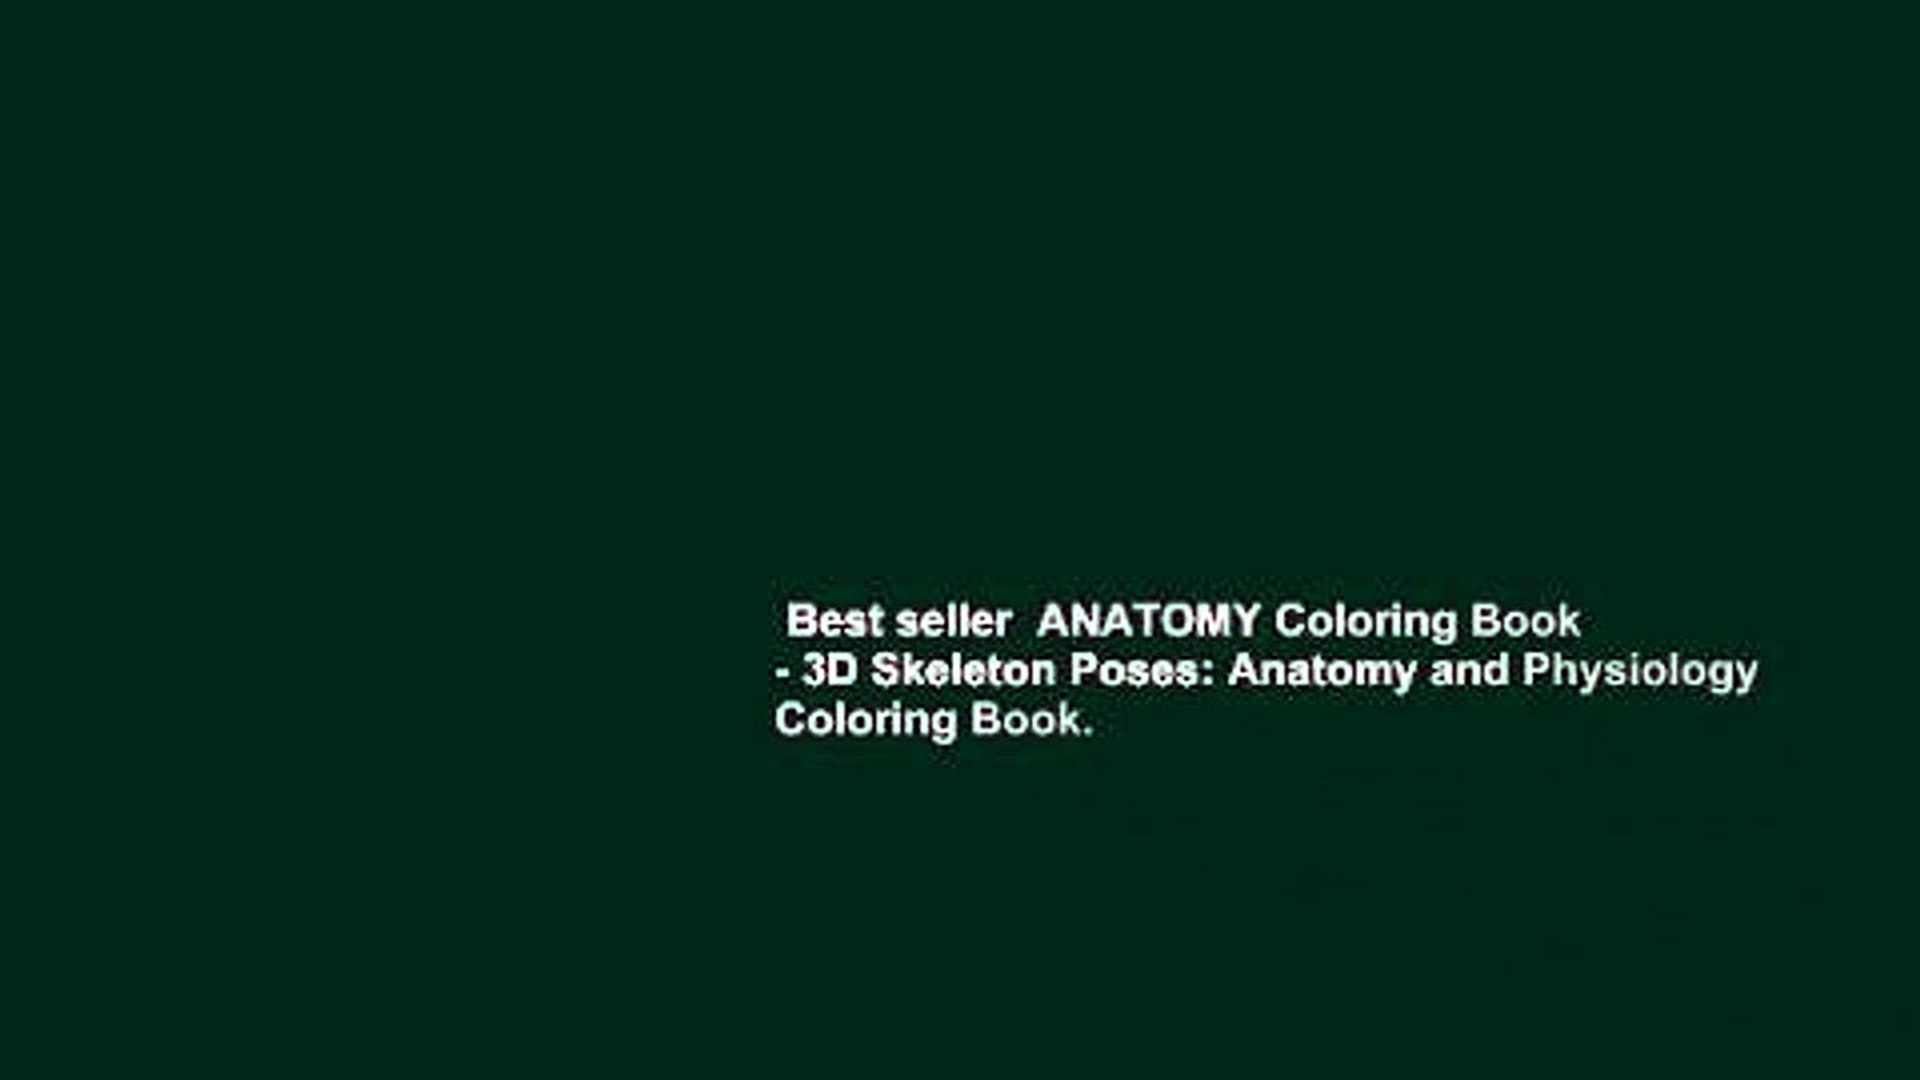 Best seller ANATOMY Coloring Book - 3D Skeleton Poses: Anatomy and Physiology Coloring Book.